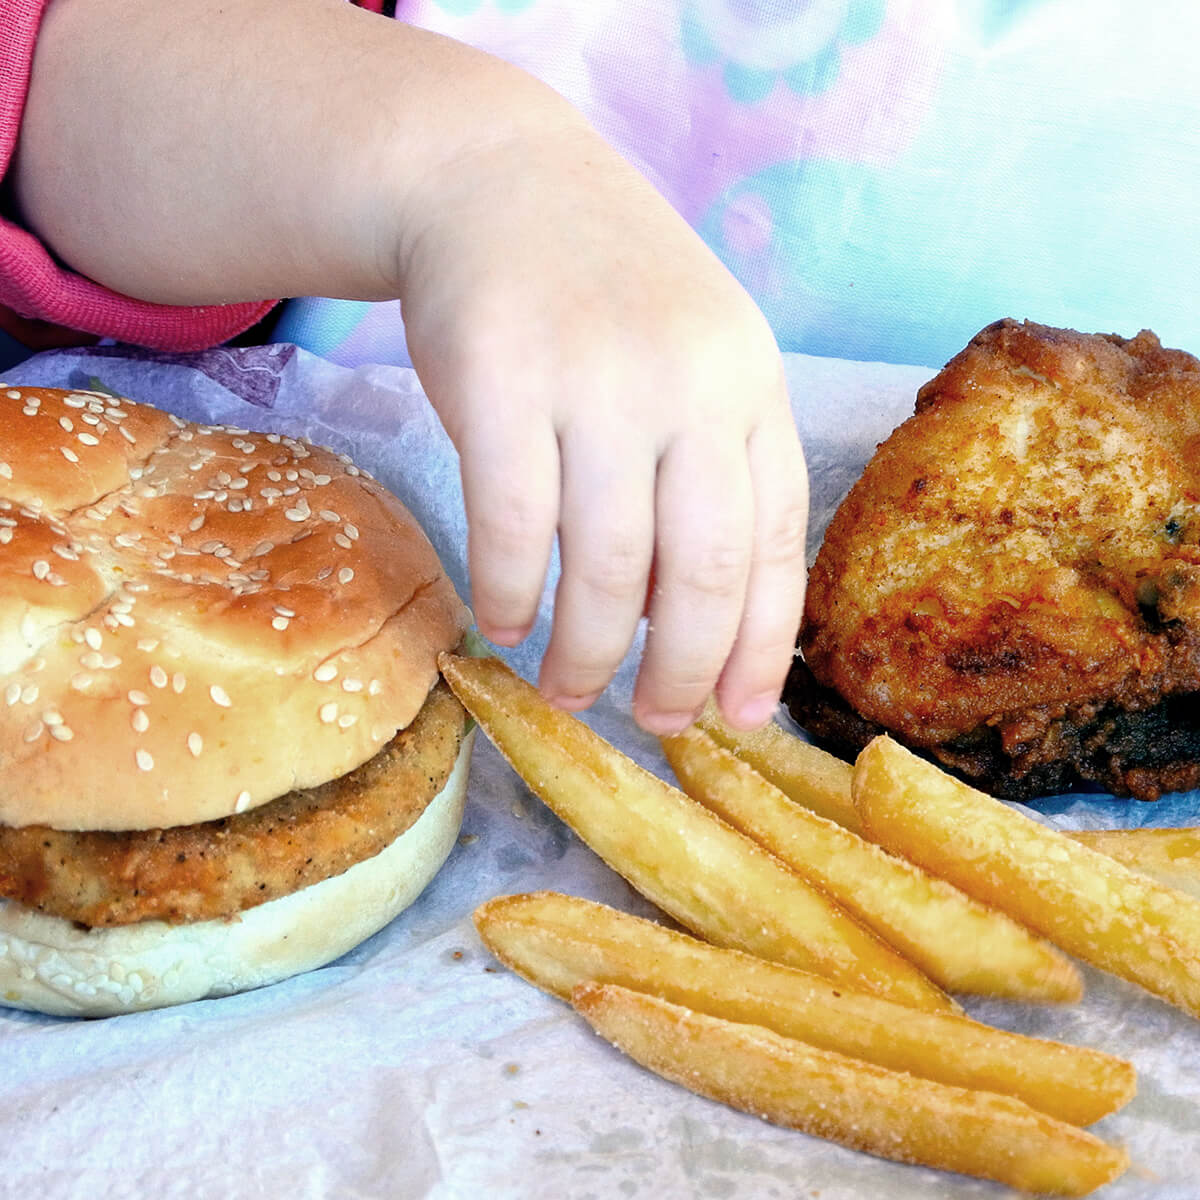 Causes relating to childhood obesity